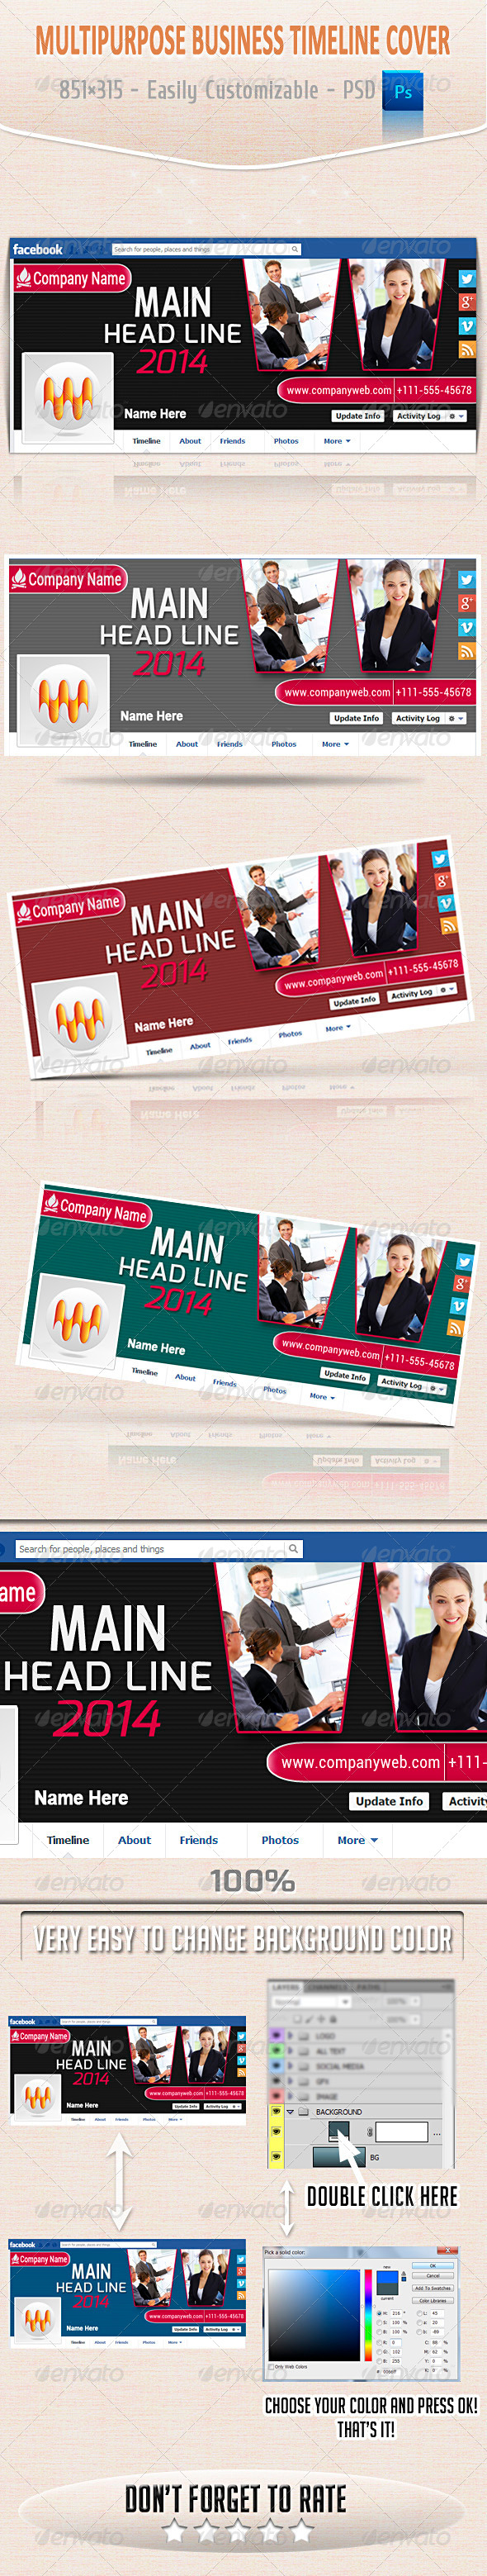 GraphicRiver Multipurpose Business Timeline Cover 6355671